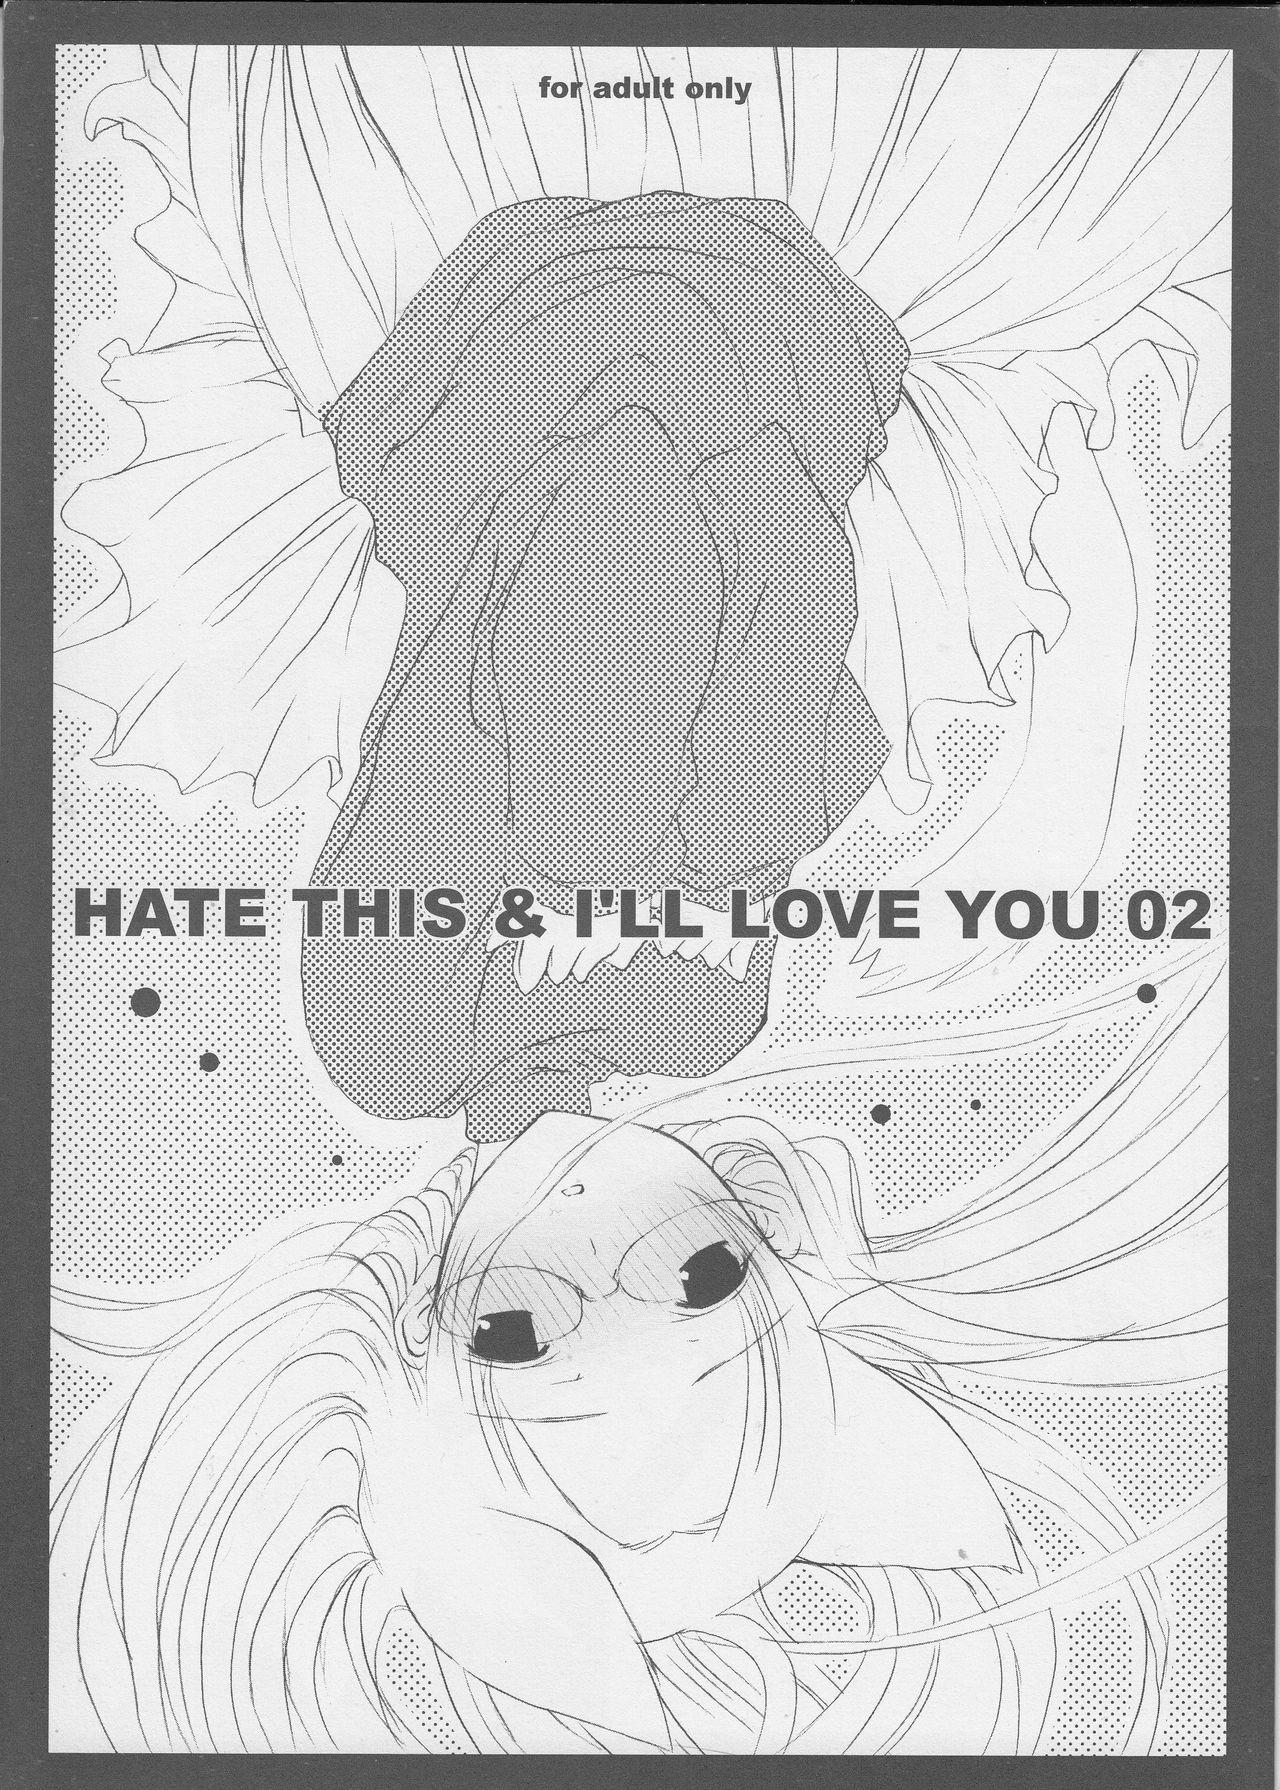 HATE THIS &I'LL LOVE YOU 02 0